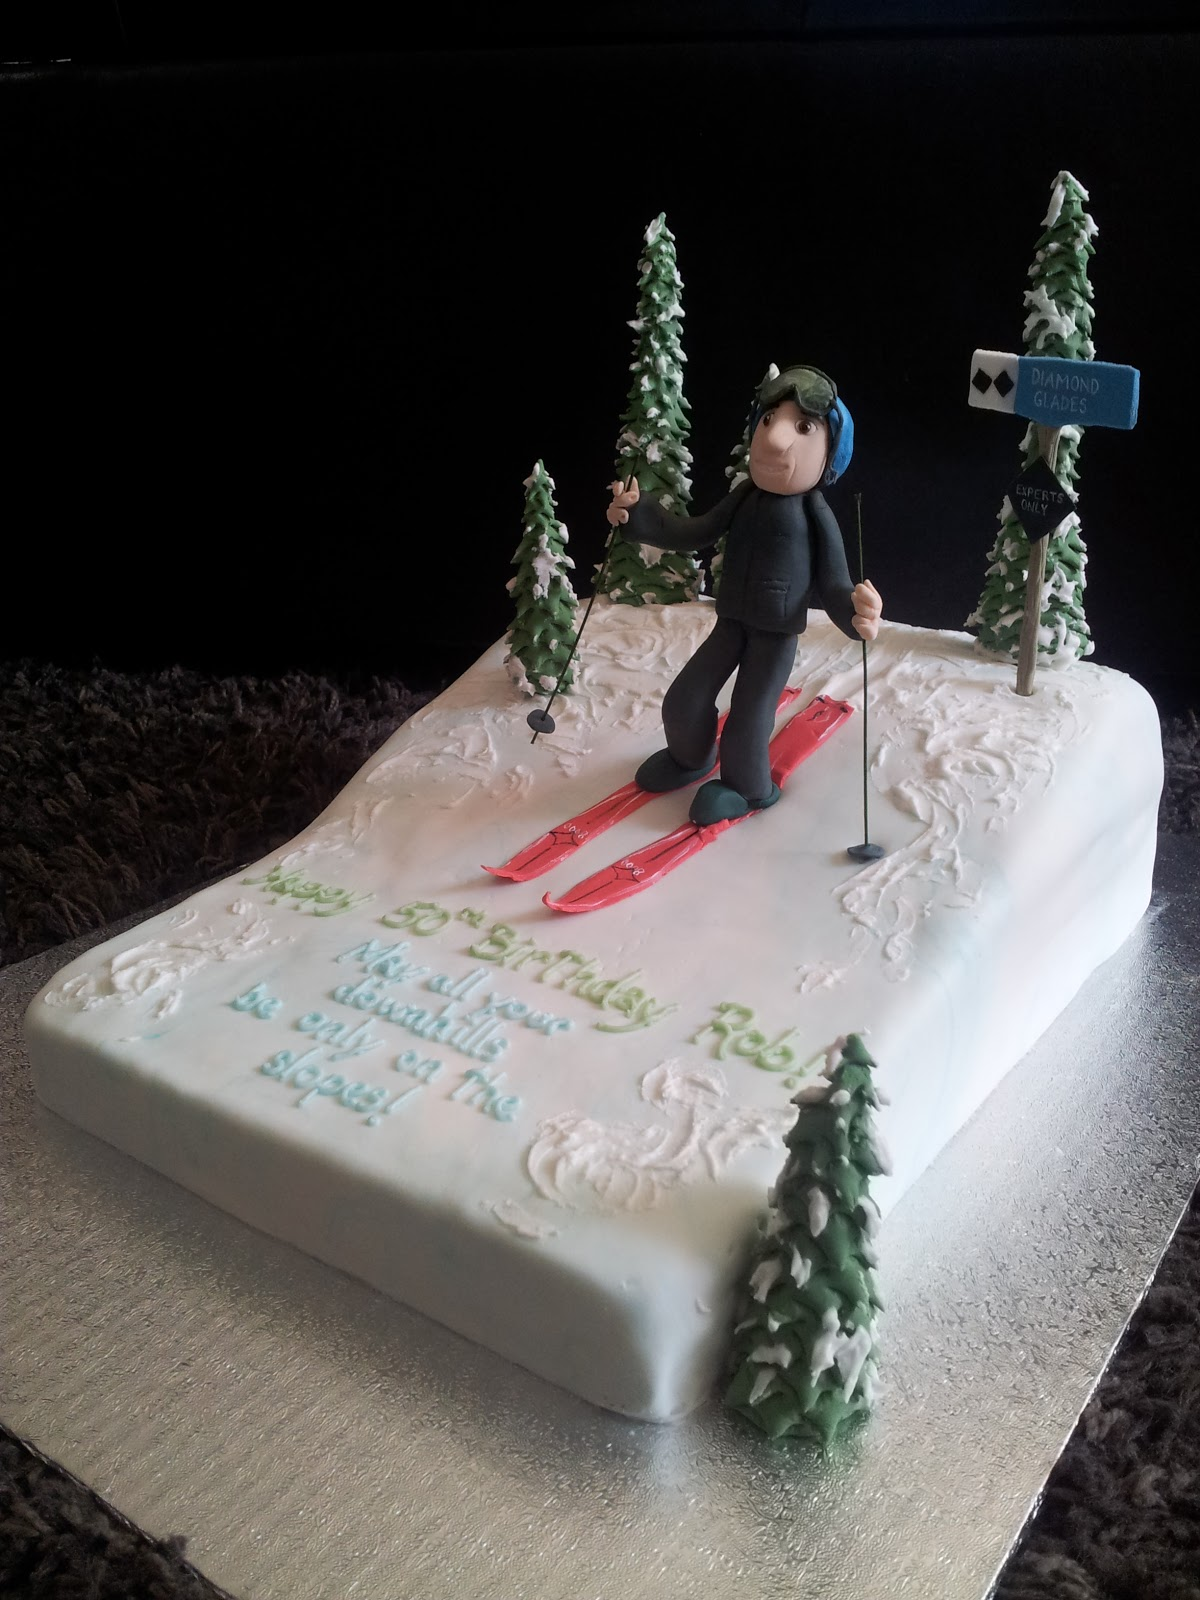 Kiddles N Bits Skiing cake